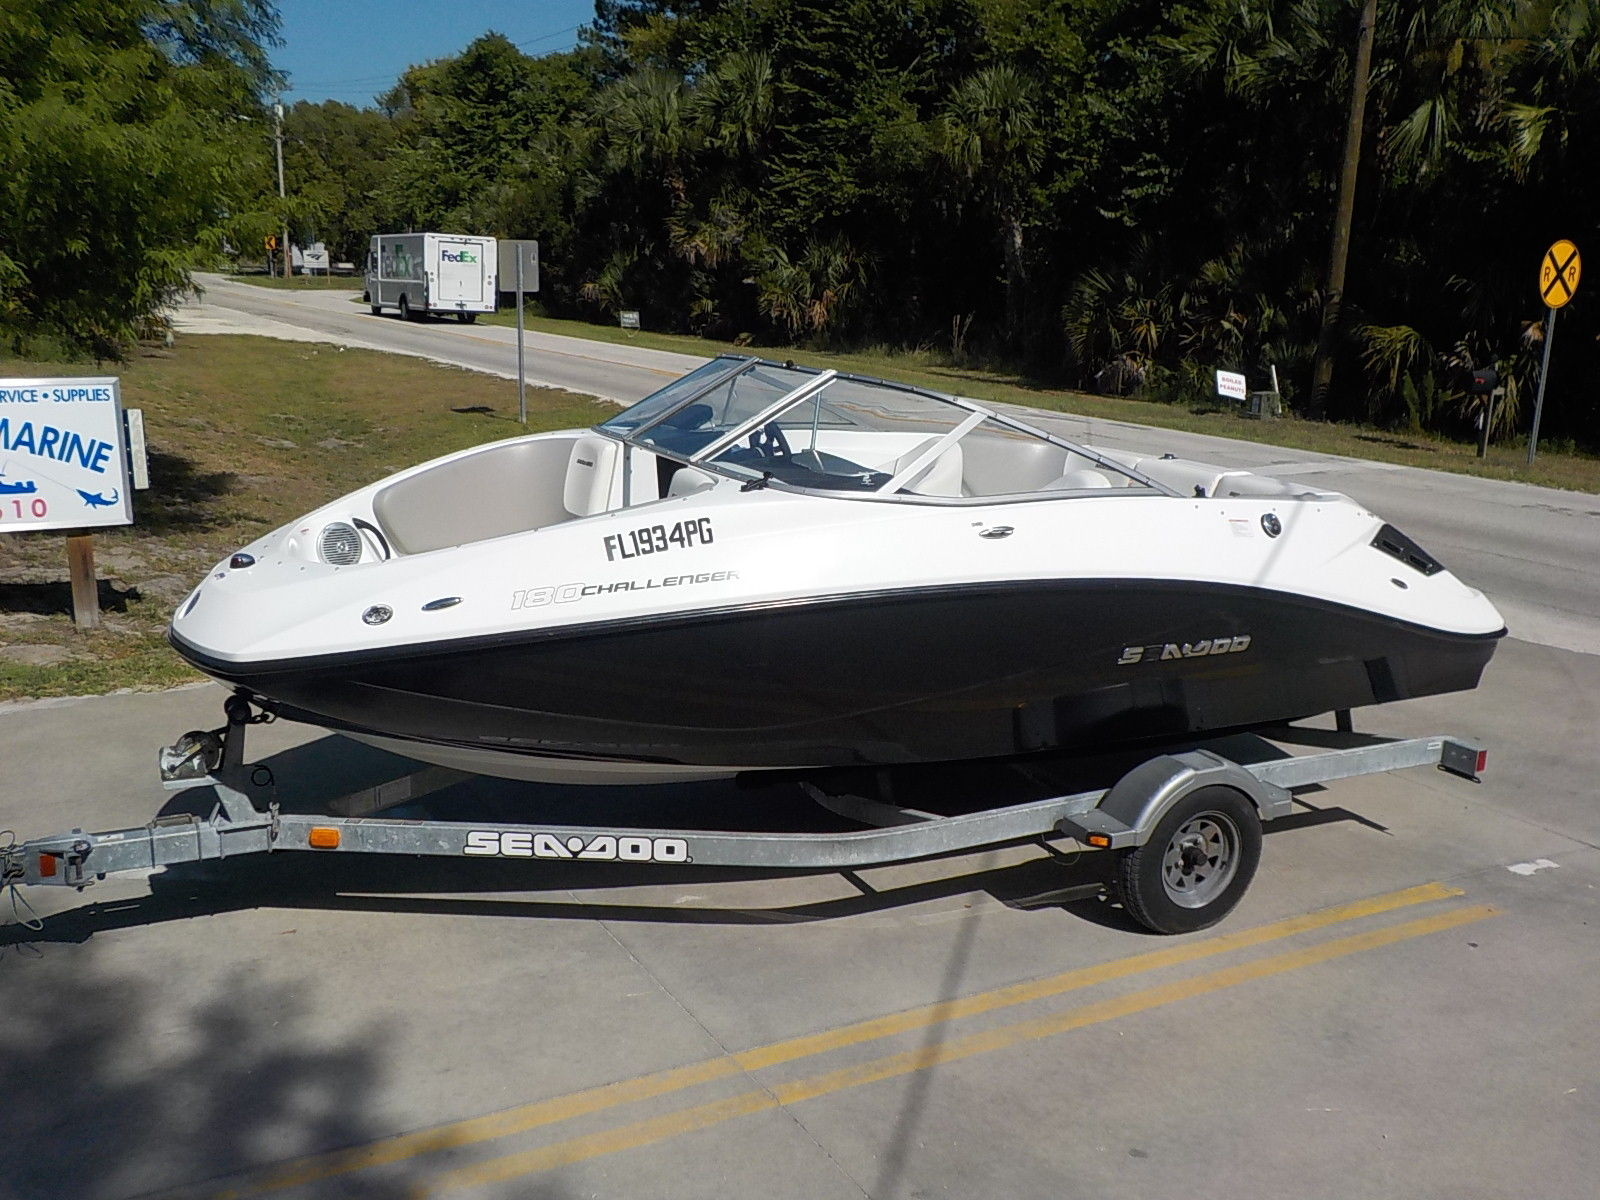 Fountain Boats For Sale >> Sea Doo Challenger 180 2012 for sale for $18,888 - Boats-from-USA.com